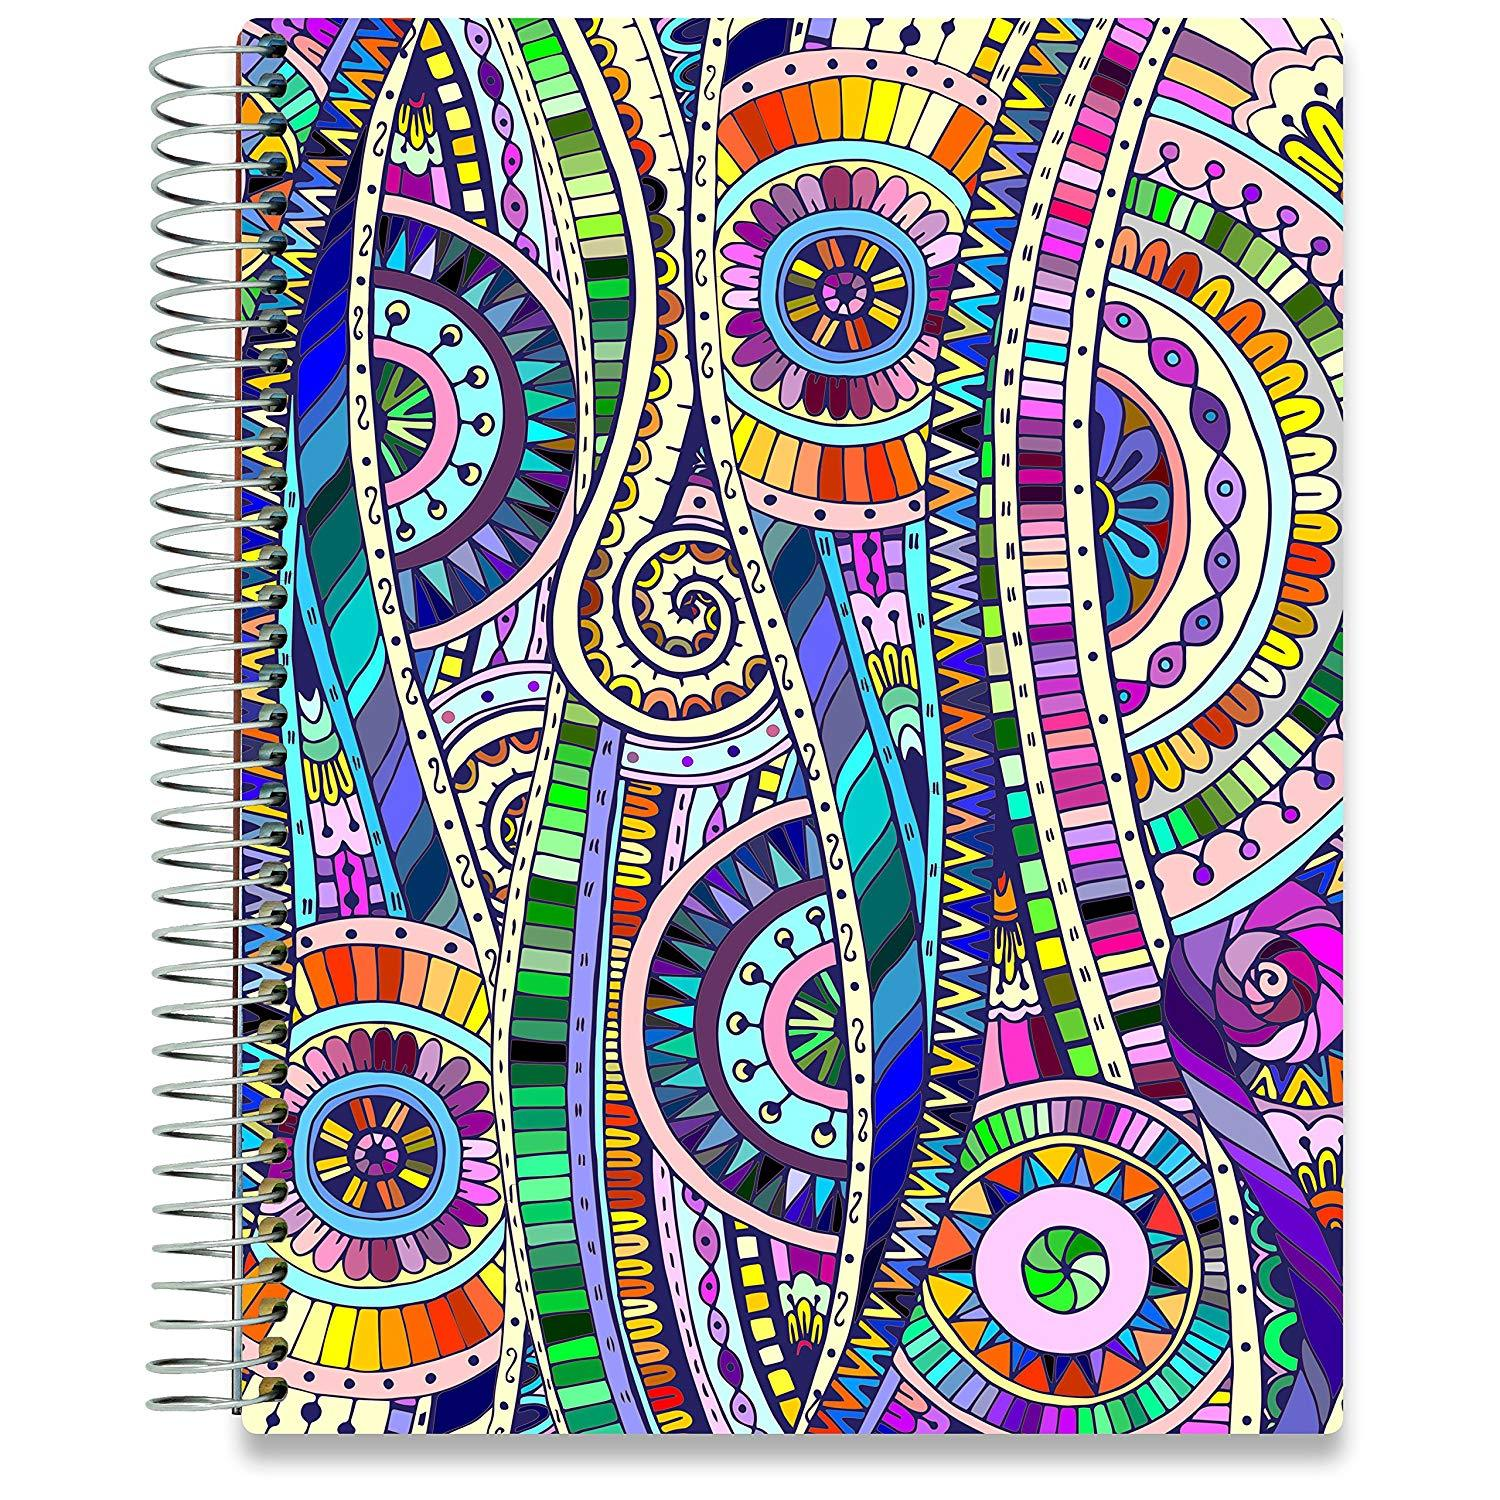 NEW: April 2020-2021 Planner - 8.5x11 - Abstract-Office Product-Tools4Wisdom